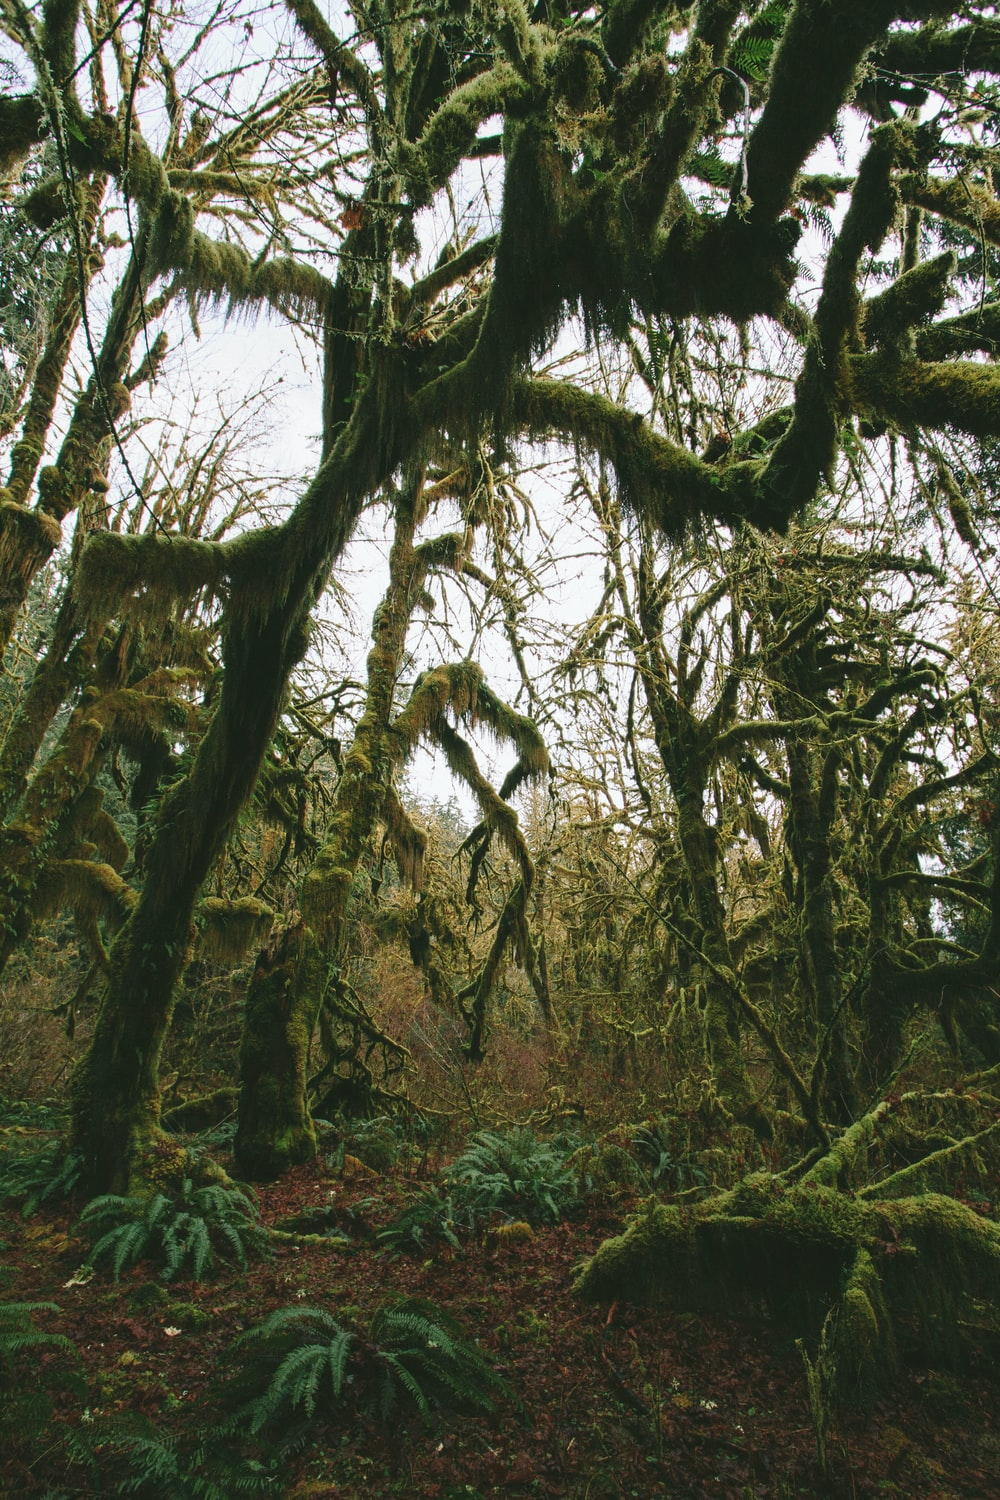 forest with mossy trees during daytime